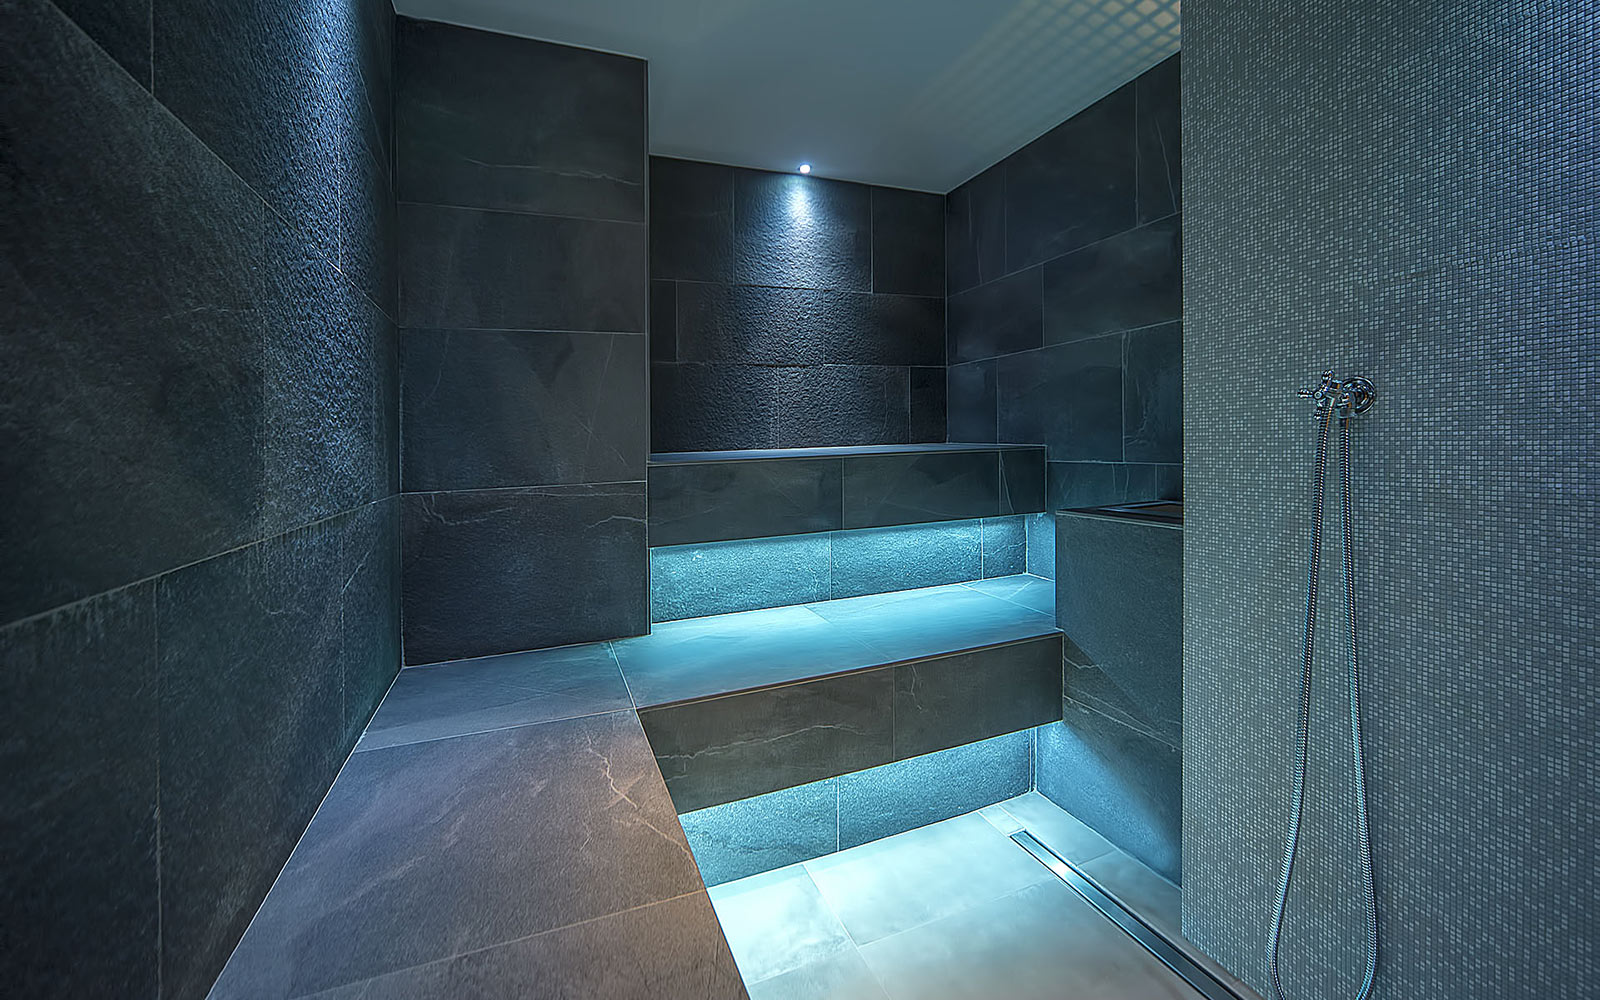 https://www.sanae.it//assets/img/projects/spa-anfra/bagno-turco-spa-anfra-foggia.jpg